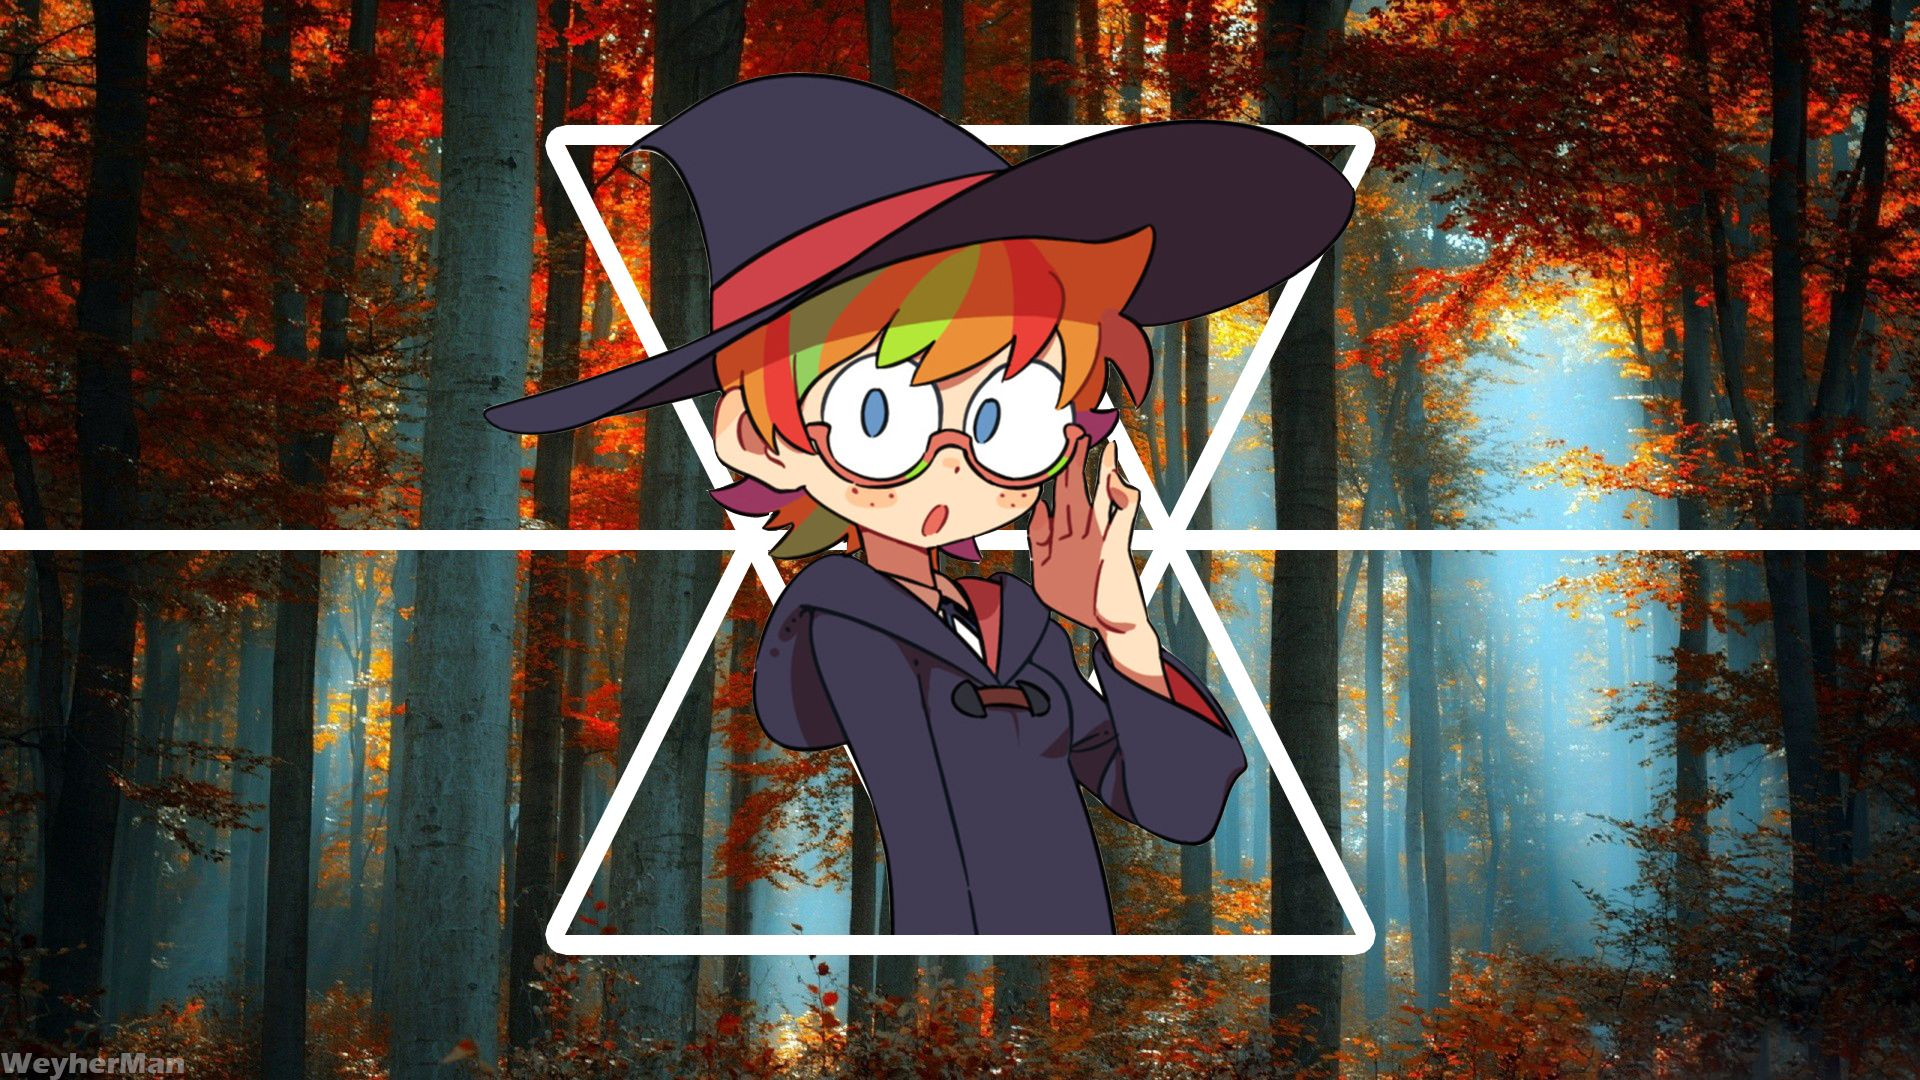 Little Witch Lotte 1920 X 1080 Hd Wallpaper From Gallsource Com